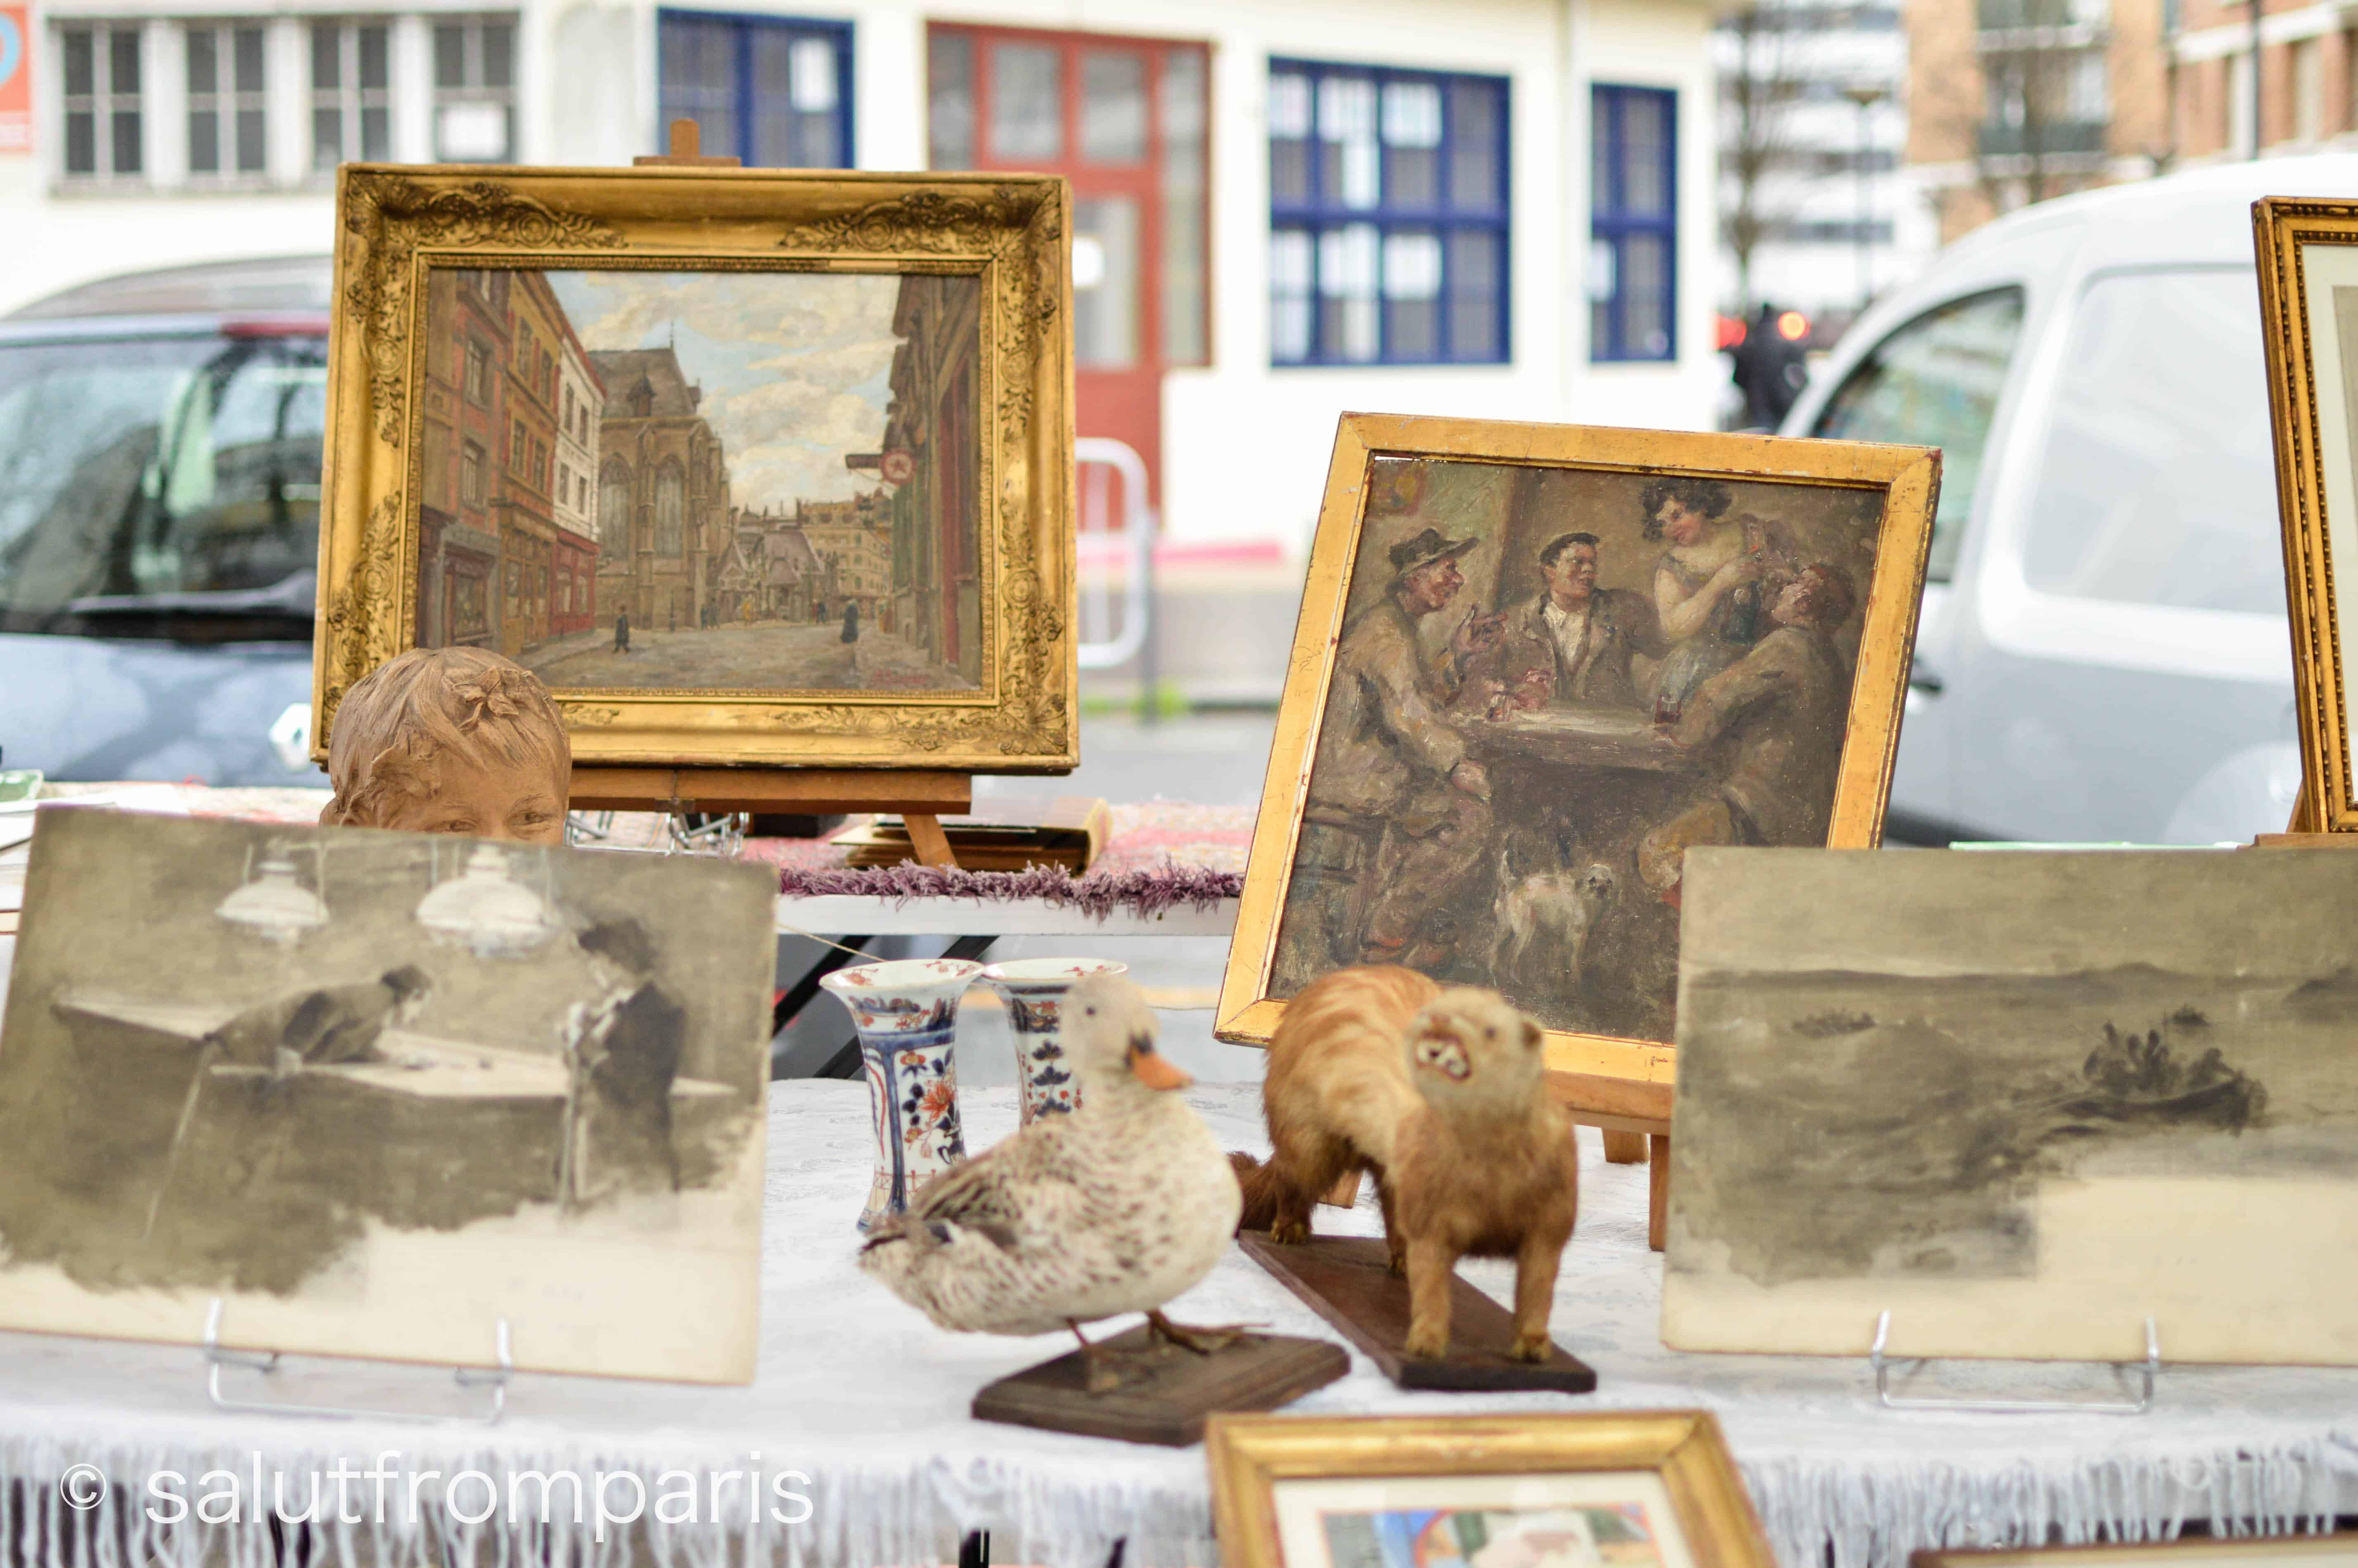 The Puce de Vanves offers all sorts of antique and vintage goods. Head to Porte de Vanves Paris to find antique items